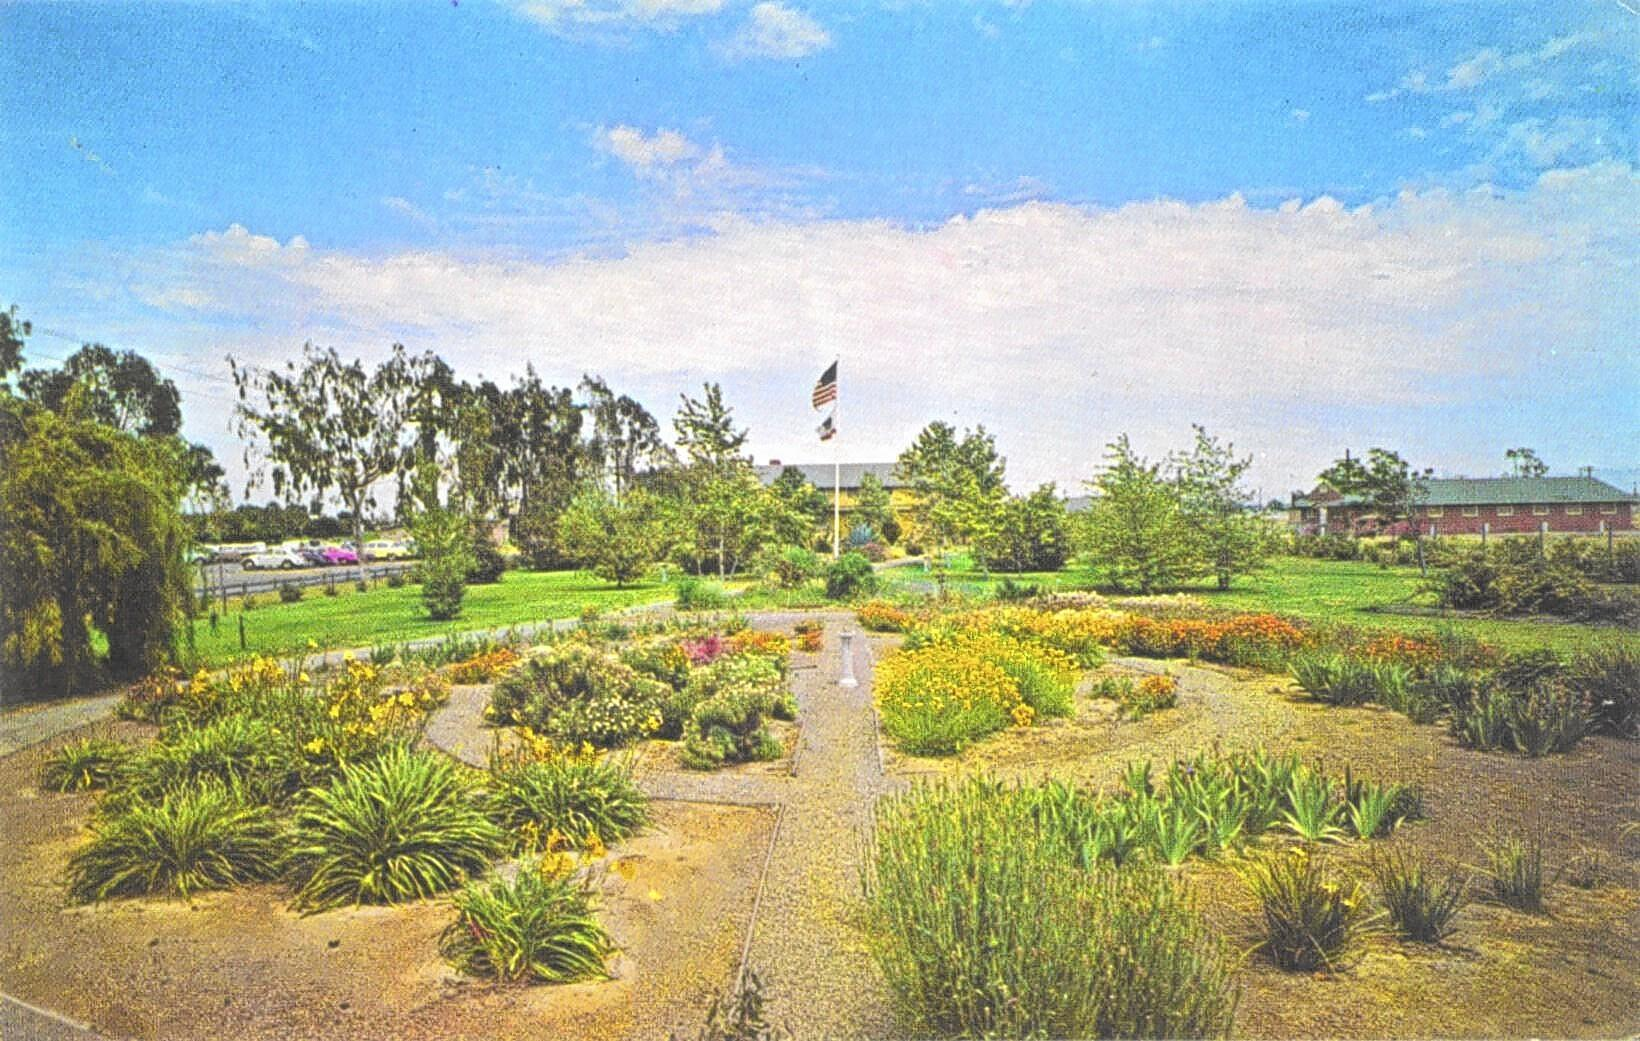 A local group is calling on the Orange County Fair Board to rebuild a veterans memorial garden at the fairgrounds. The Orange County Memorial Garden Center, shown here in the 1950s, was a 1.4-acre facility at the fairgrounds that was torn out in the early 1980s to make room for the Pacific Amphitheatre.